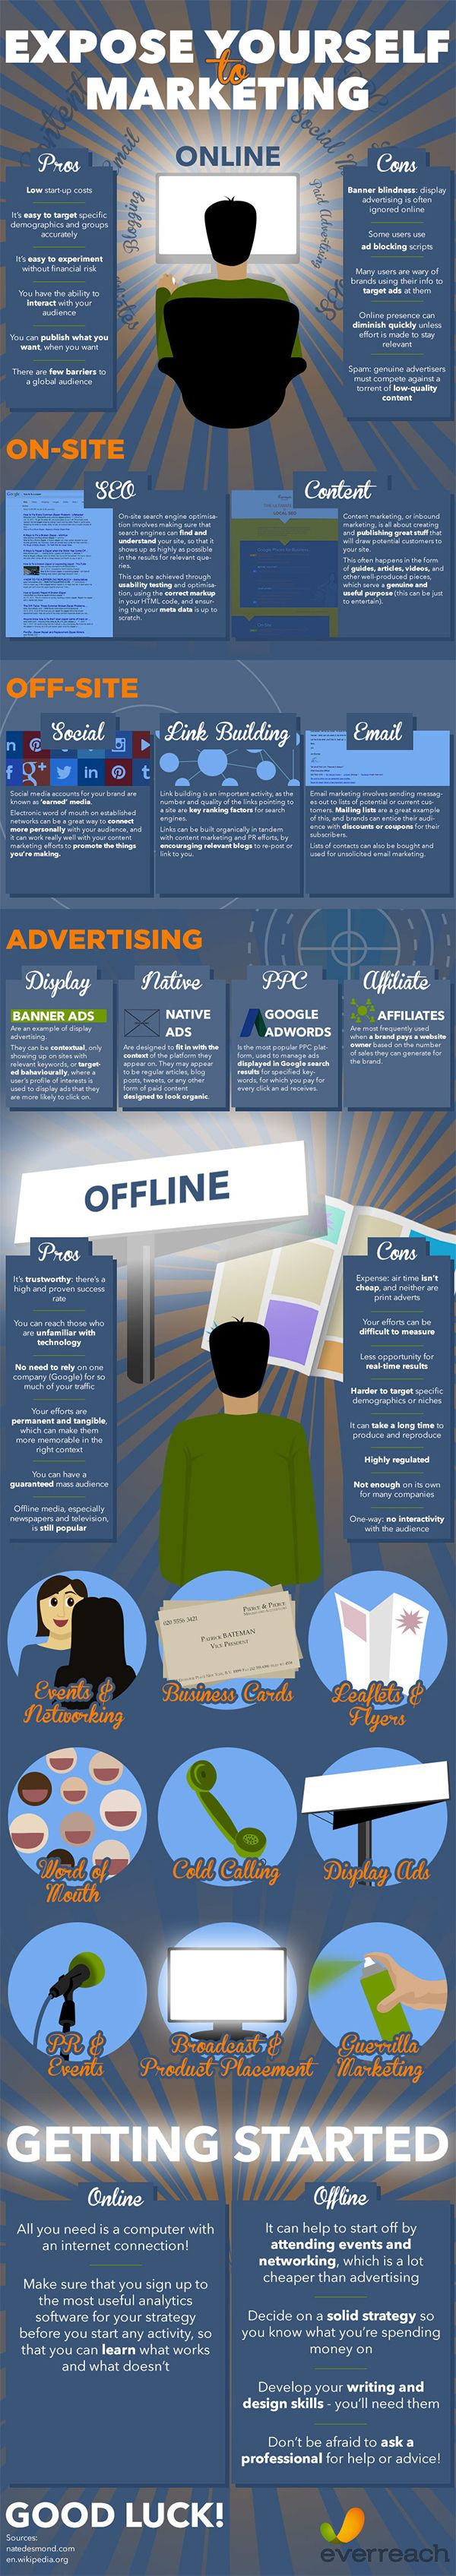 #Marketing Basics 18 Online and Offline Tactics Every #Business Should Use.